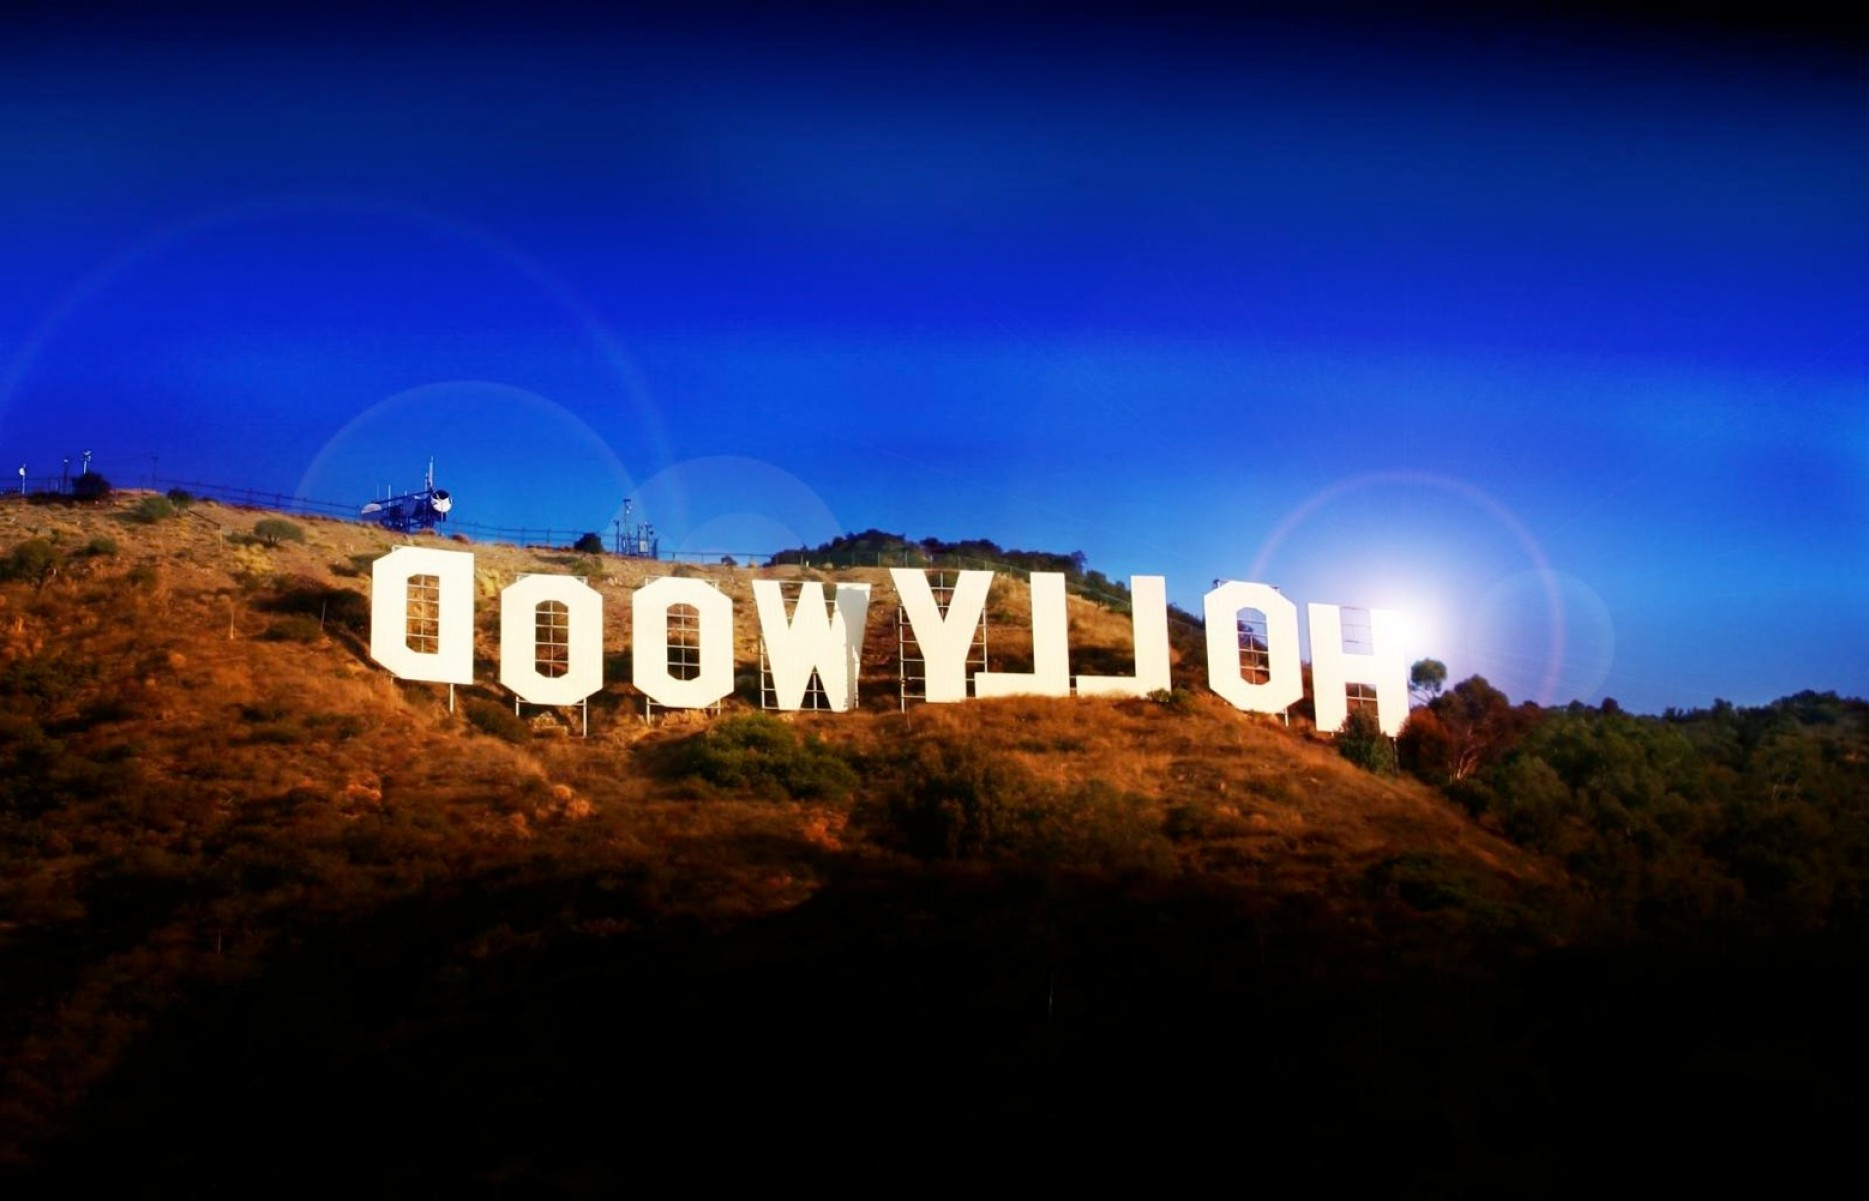 Hollywood Hills Vector: Write Your Name On Hollywood Hills